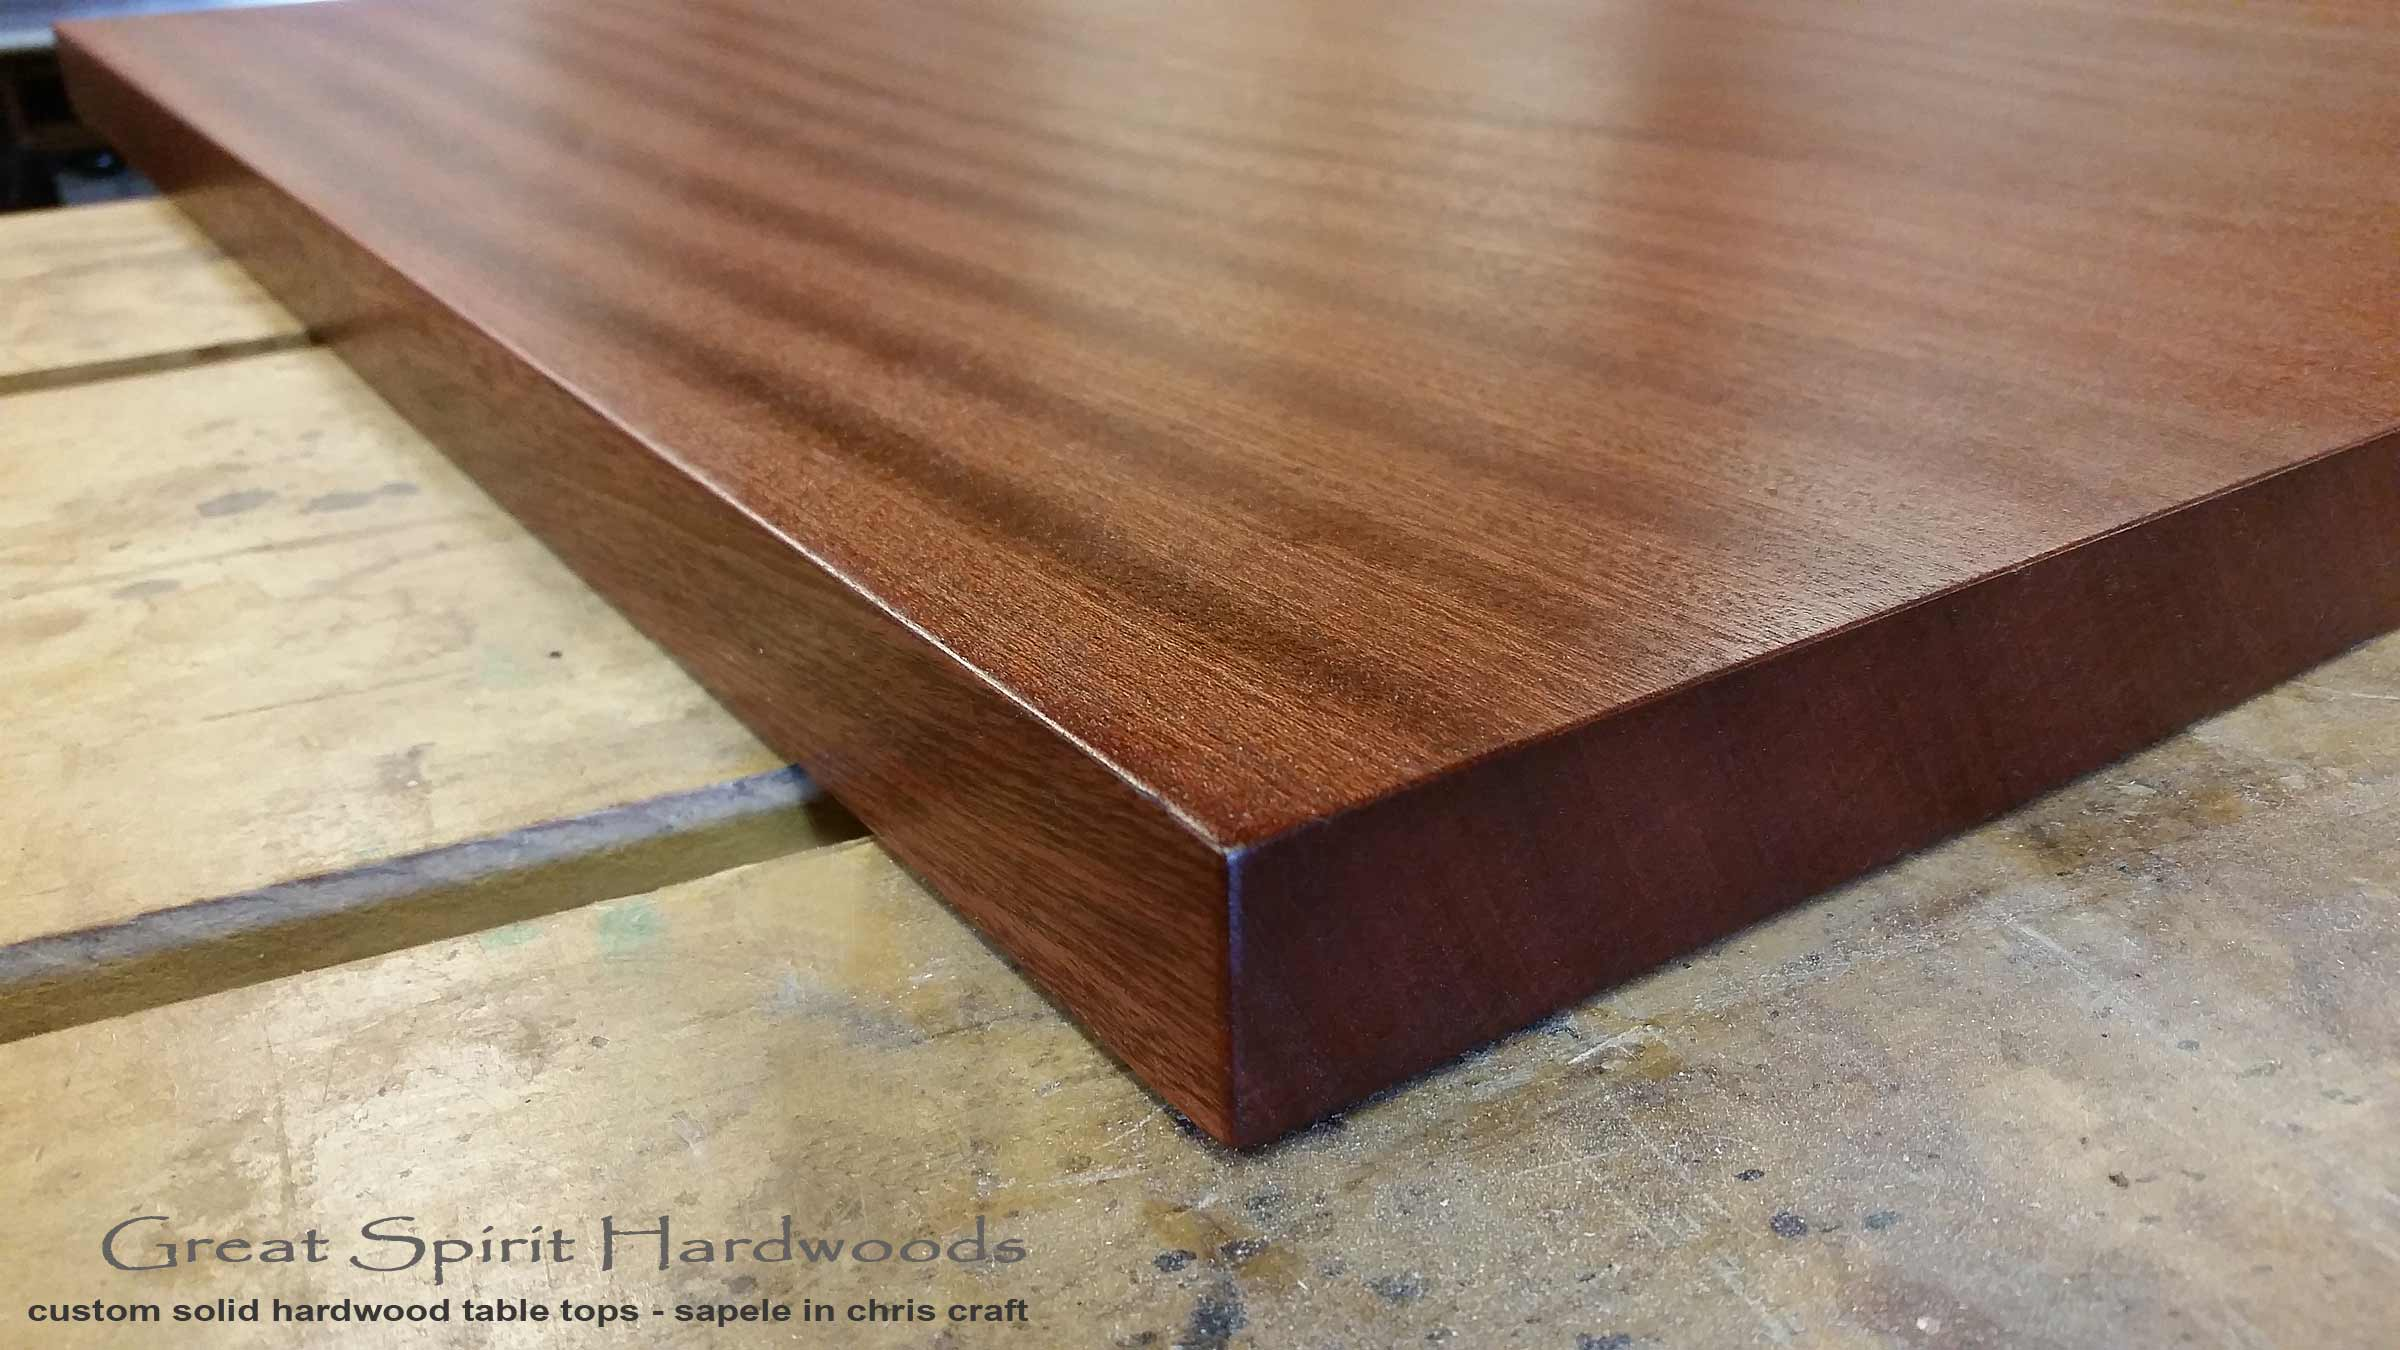 Custom made solid hardwood table tops for restaurant  office  library and  residential clients in. Custom solid hardwood table tops   live edge slabs